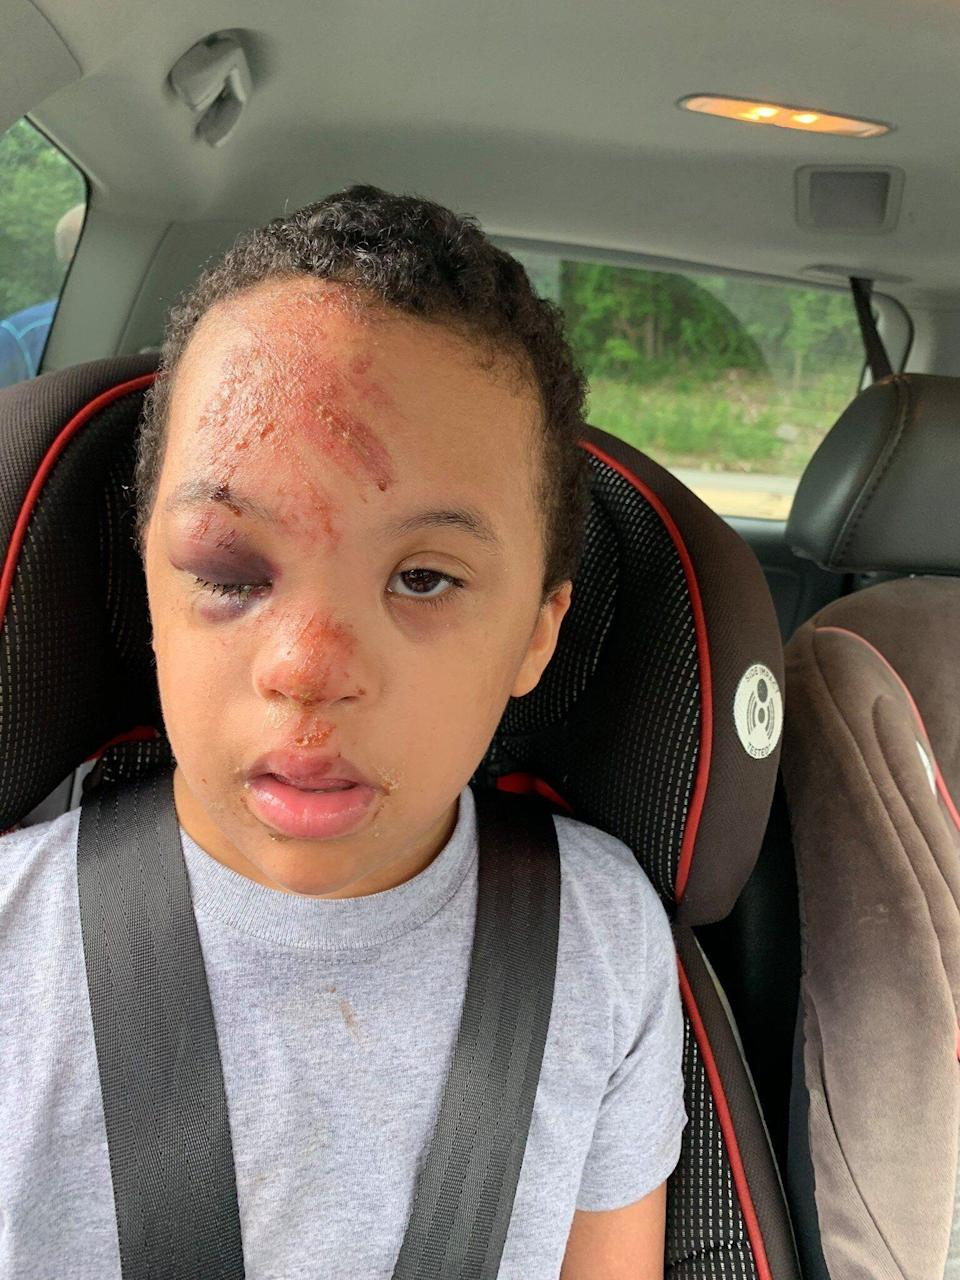 Young boy with Down Syndrome was injured on a school bus, and the school refused to provide video footage from the bus to the boy's family. (Credit: Angel Rivera/Facebook)